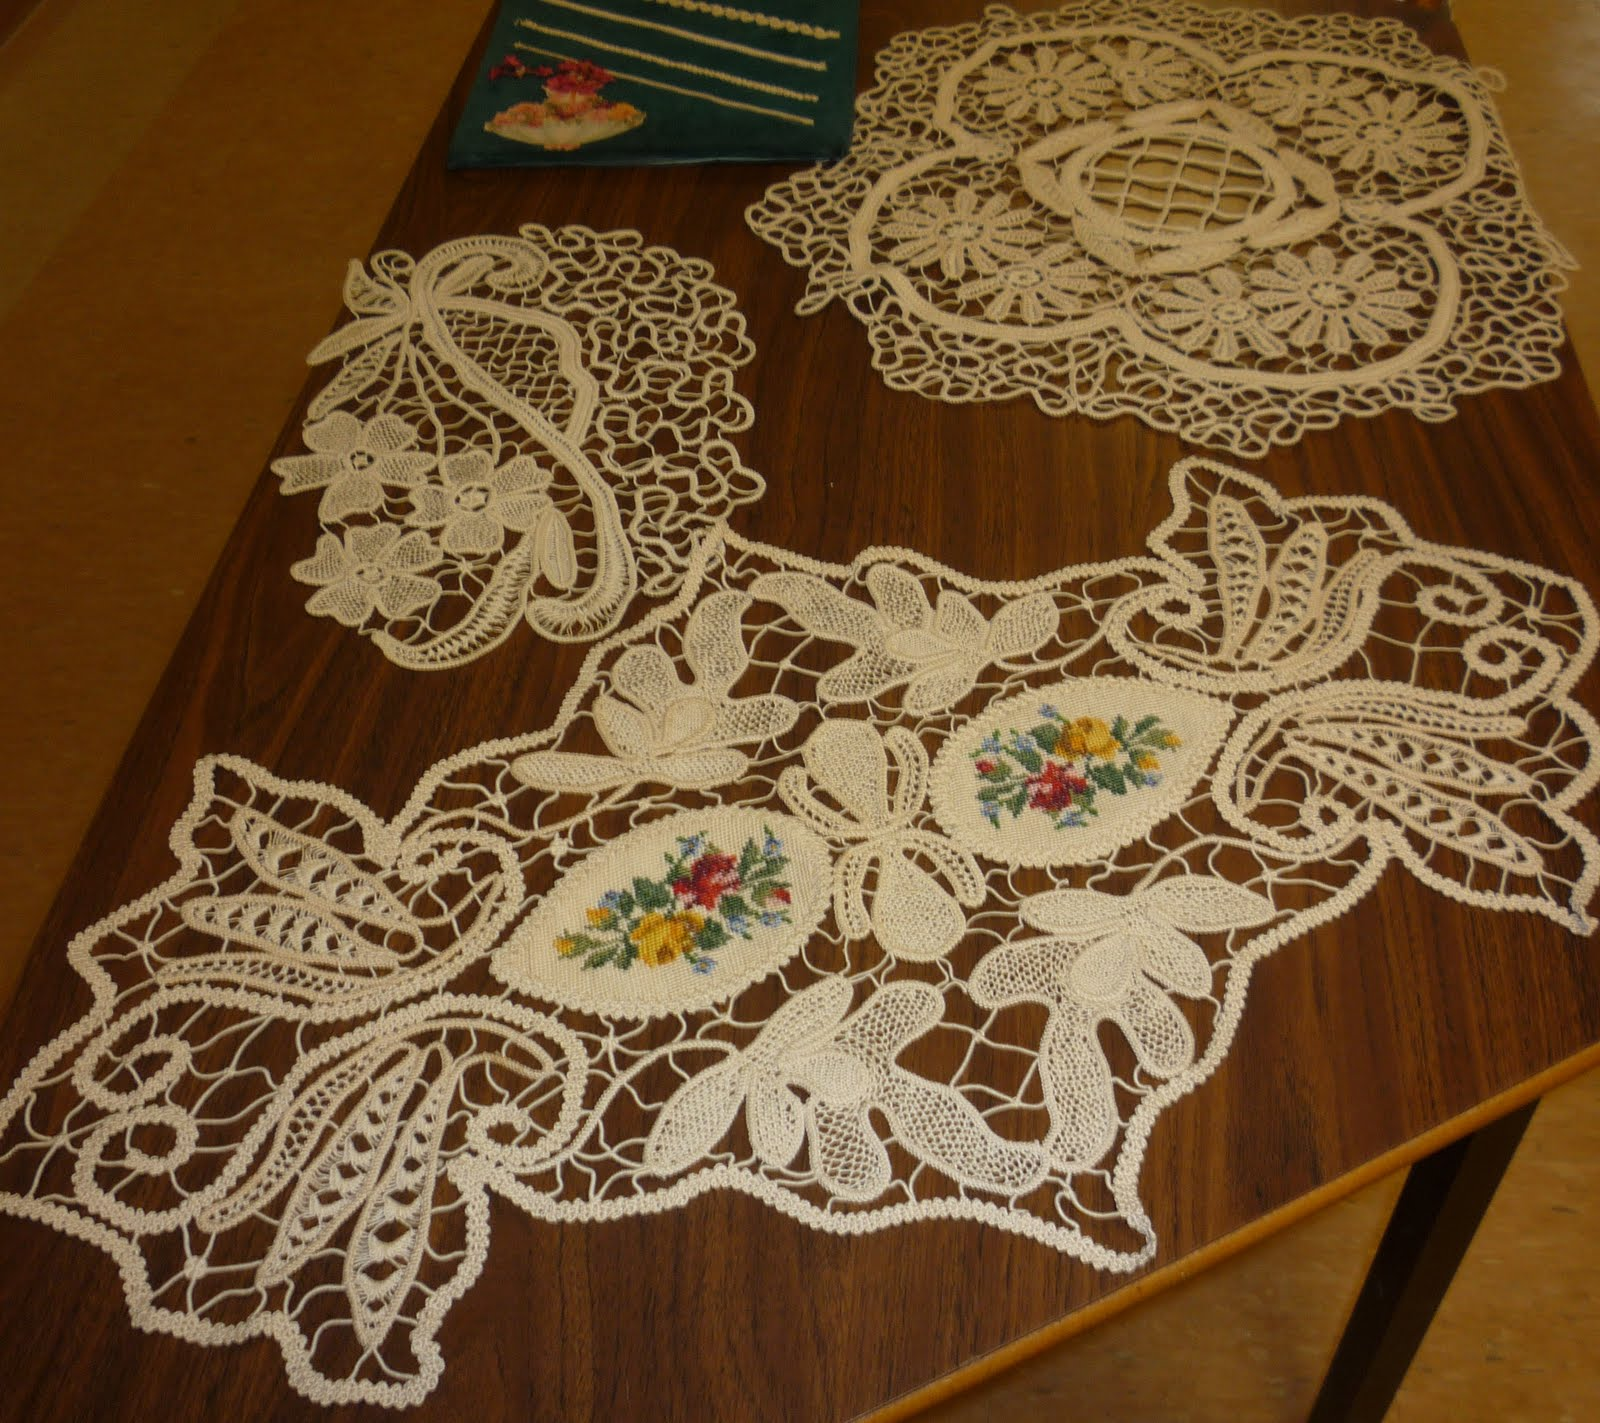 Romanian Point Lace Books http://kerrykatiecakes2.blogspot.com/2011/05/romanian-point-lace-class-with-sylvia.html